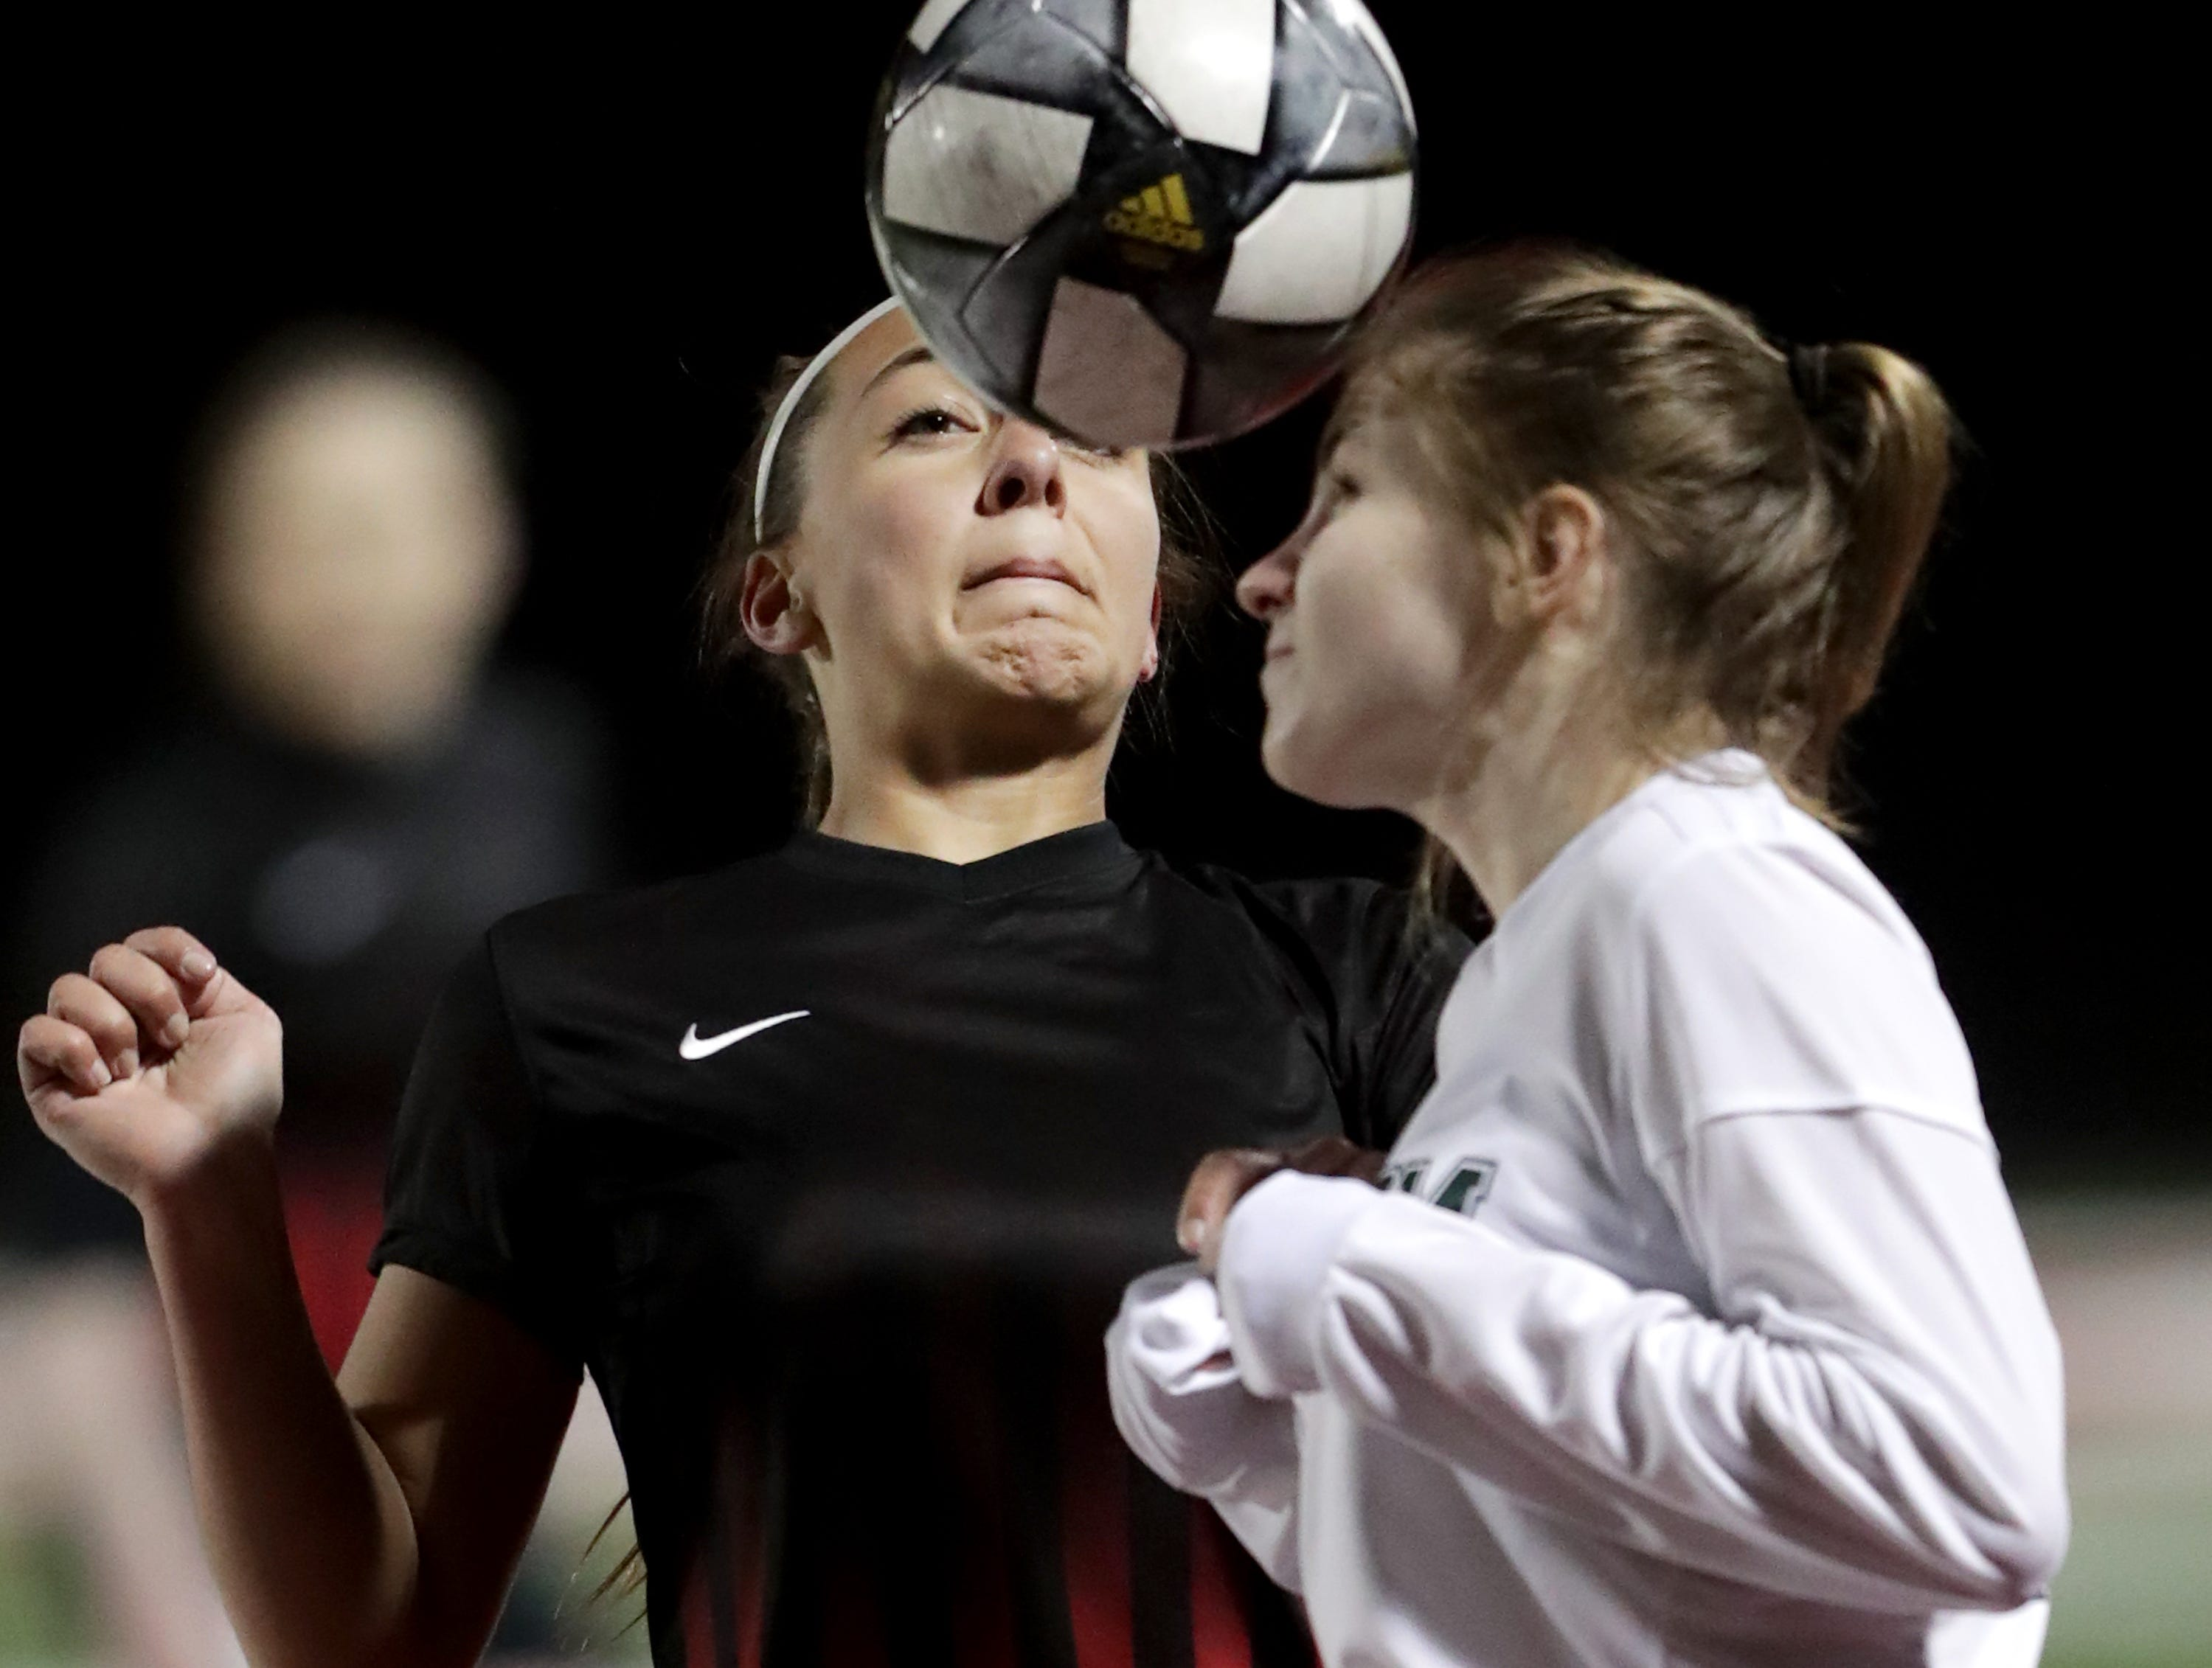 Hortonville High School's #21 McKenna Gervais against Freedom High School's #16 Paige Dollevoet during their girls soccer game on Tuesday, March 26, 2019, in Hortonville, Wis. Freedom defeated Hortonville 3 to 0.Wm. Glasheen/USA TODAY NETWORK-Wisconsin.